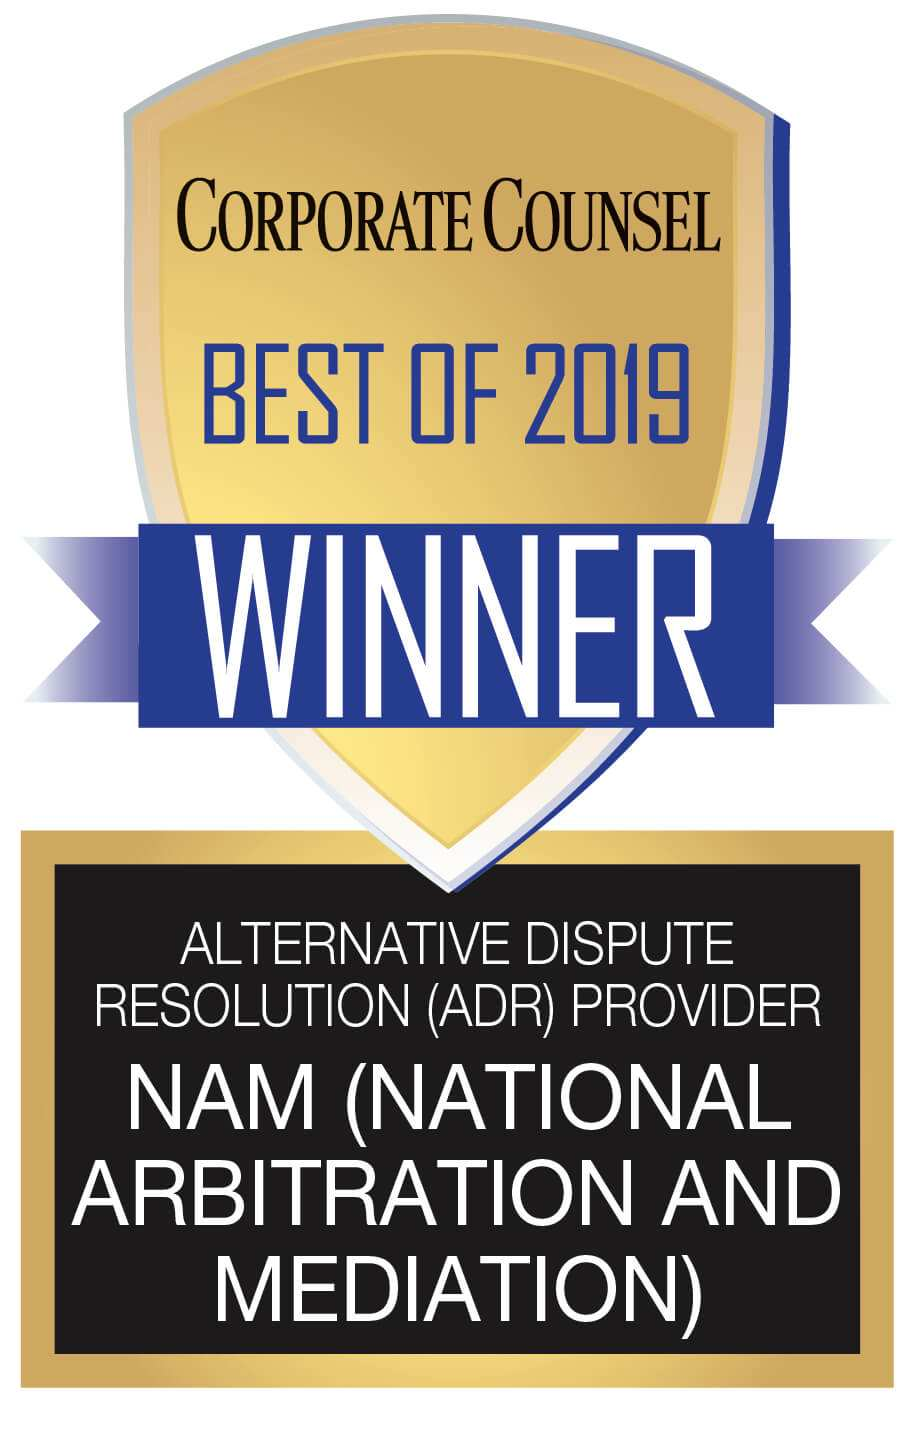 NAM (National Arbitration and Mediation) Corporate Counsel Best of 2019 Winner Badge for ADR Provider